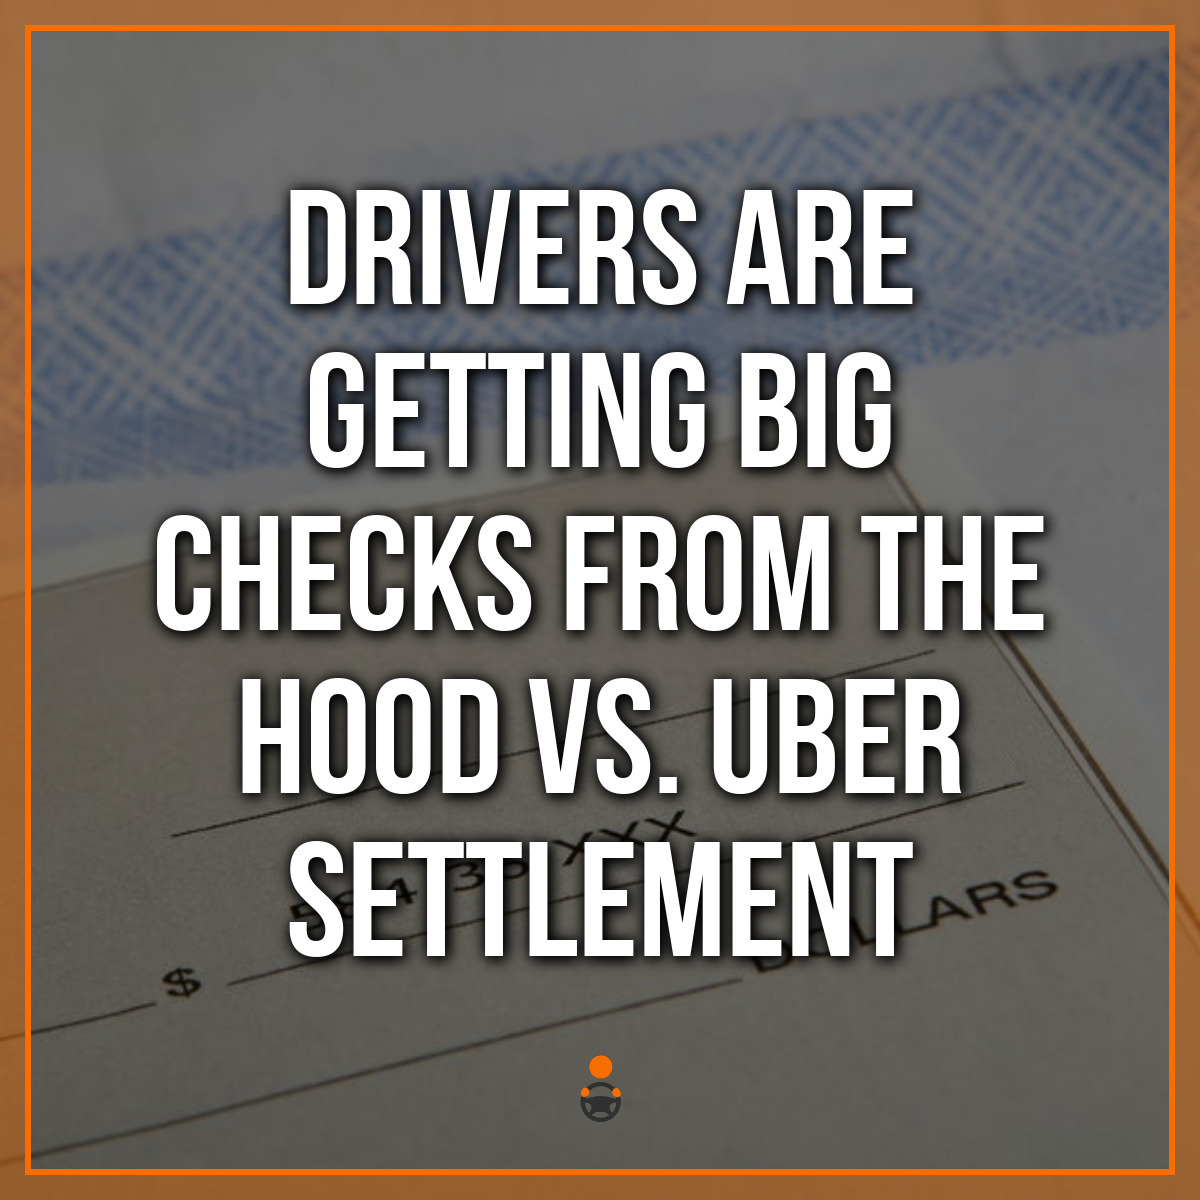 Drivers Are Getting Big Checks from the Hood vs. Uber Settlement